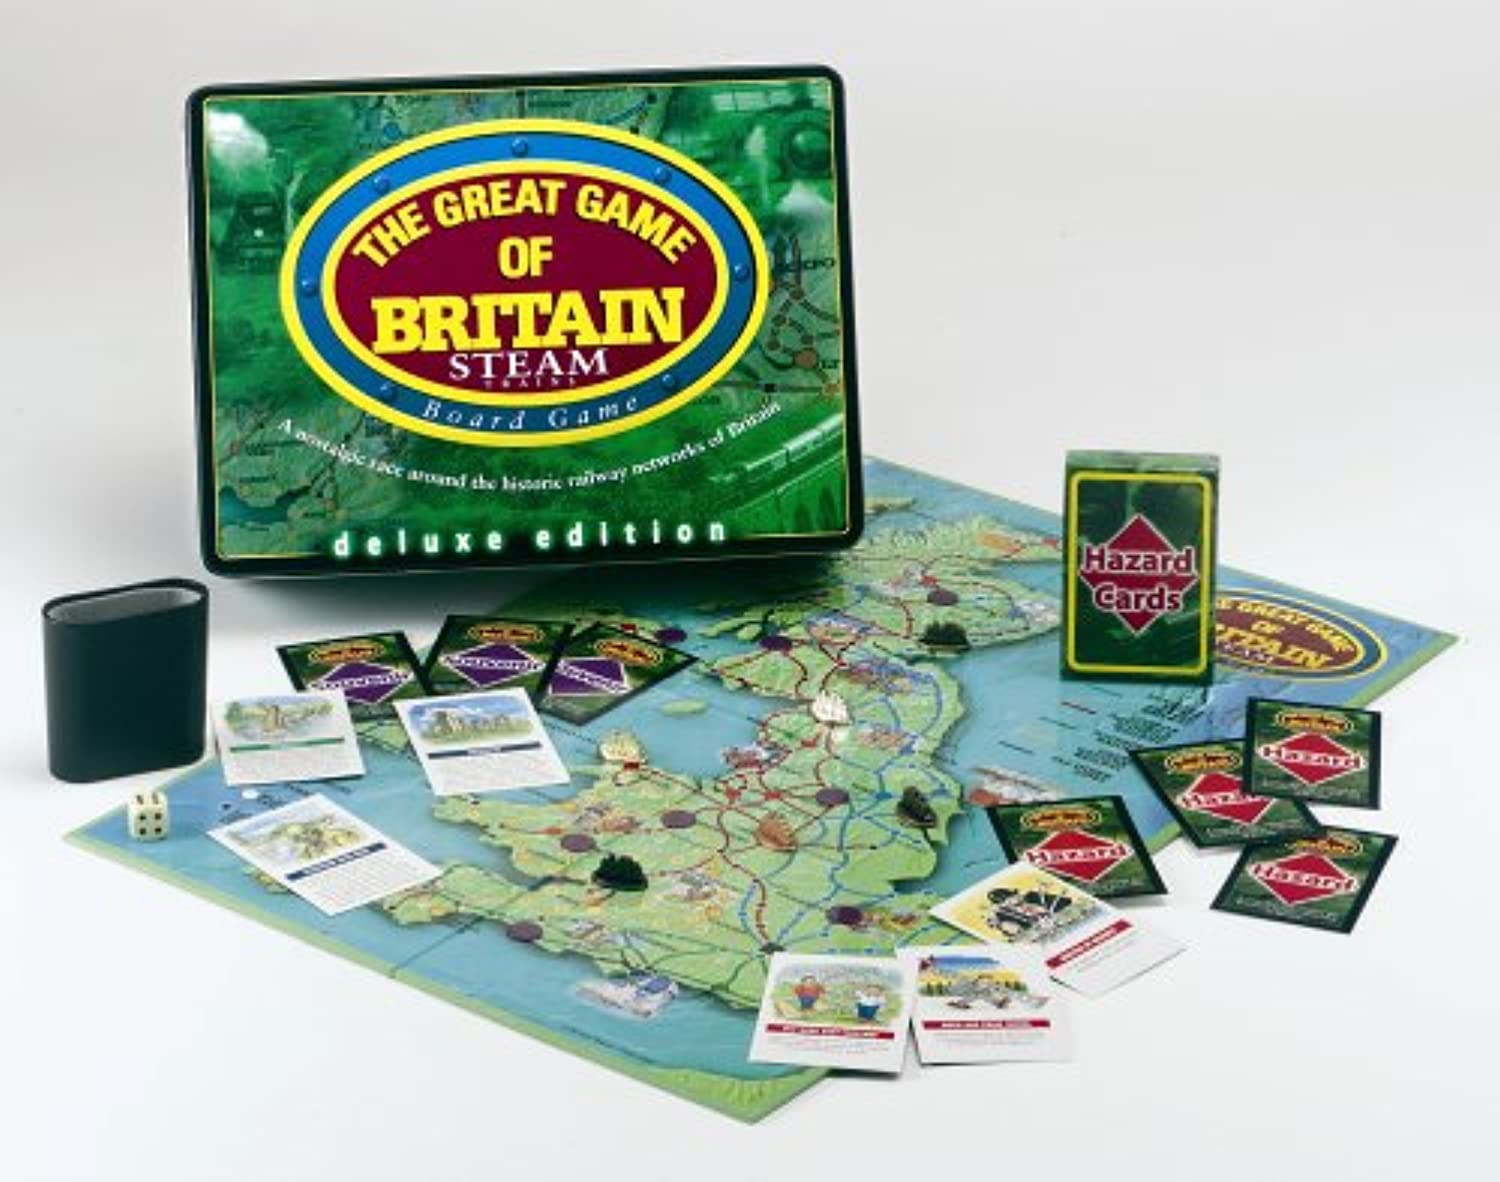 The Great Game Of Britain Steam Trains Board Game Deluxe Tin